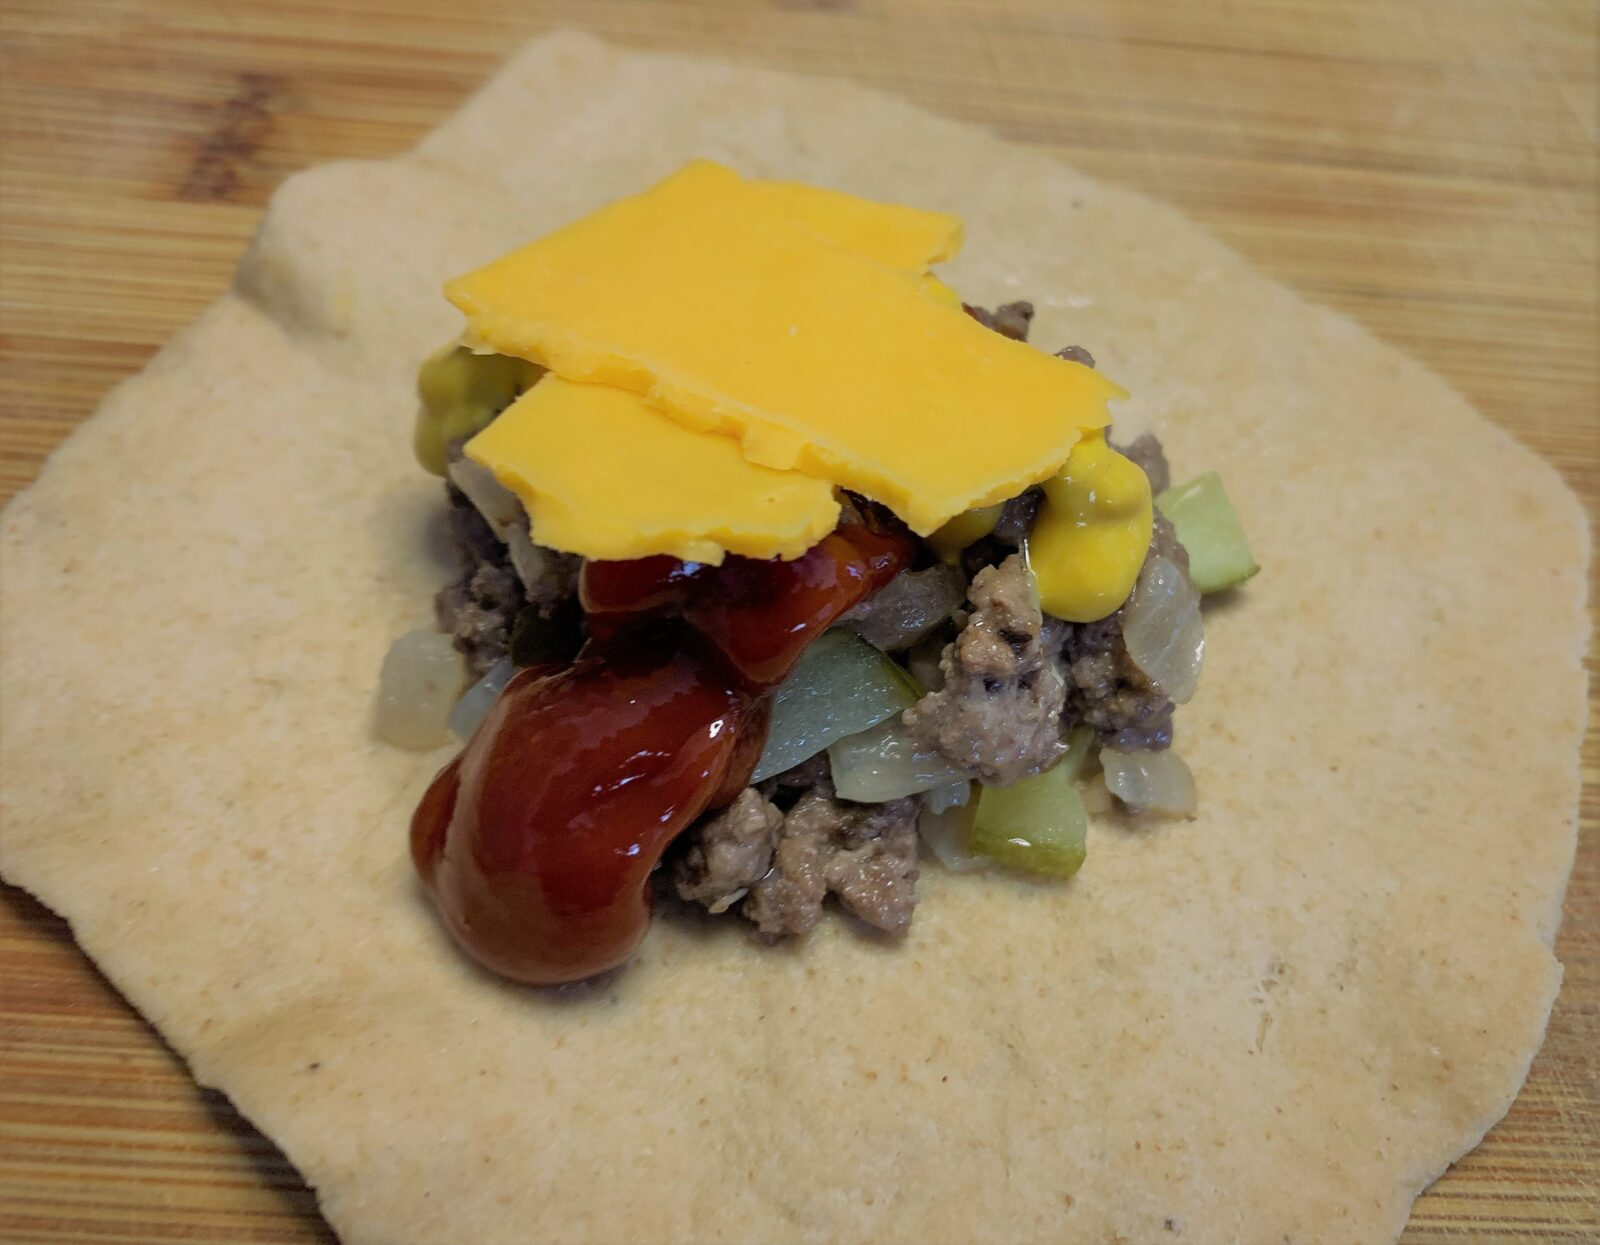 Cheeseburger Pod filling with Ketchup, Mustard and Cheese